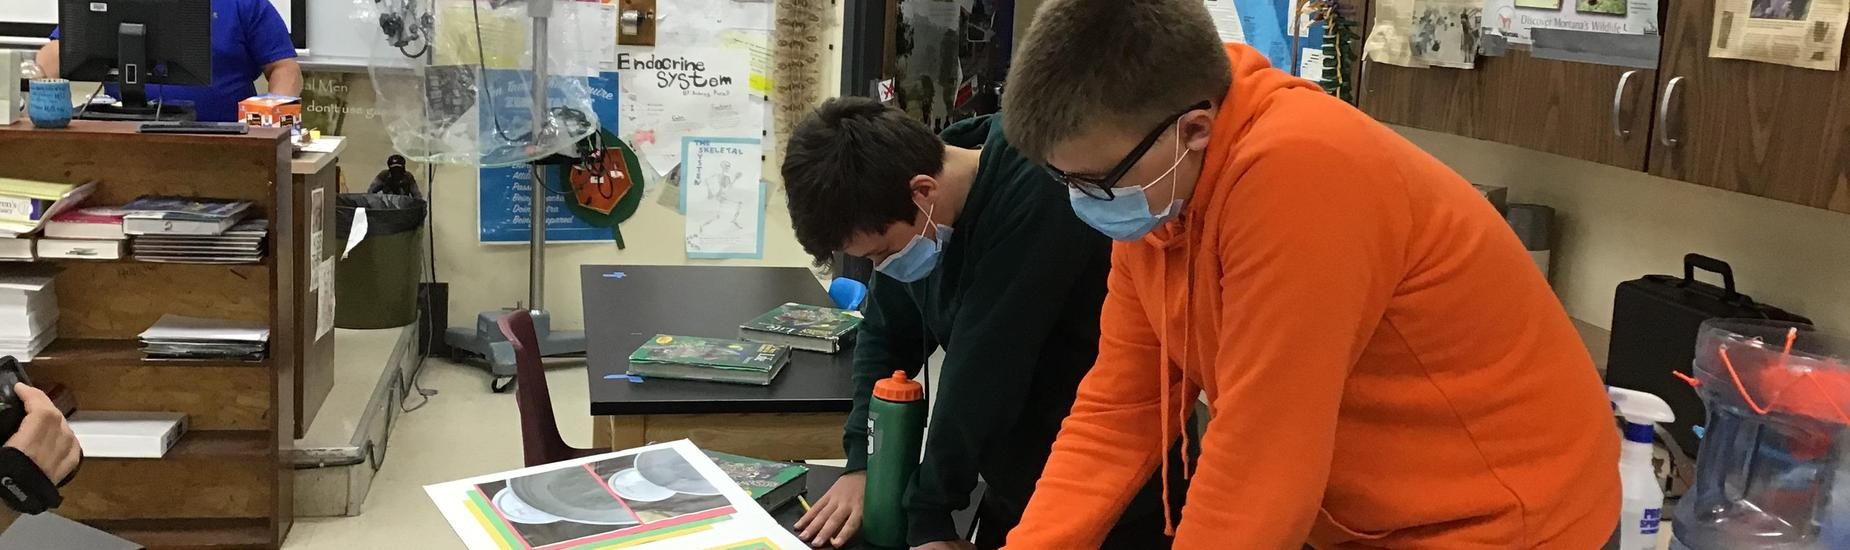 Two students working on a project at their desks